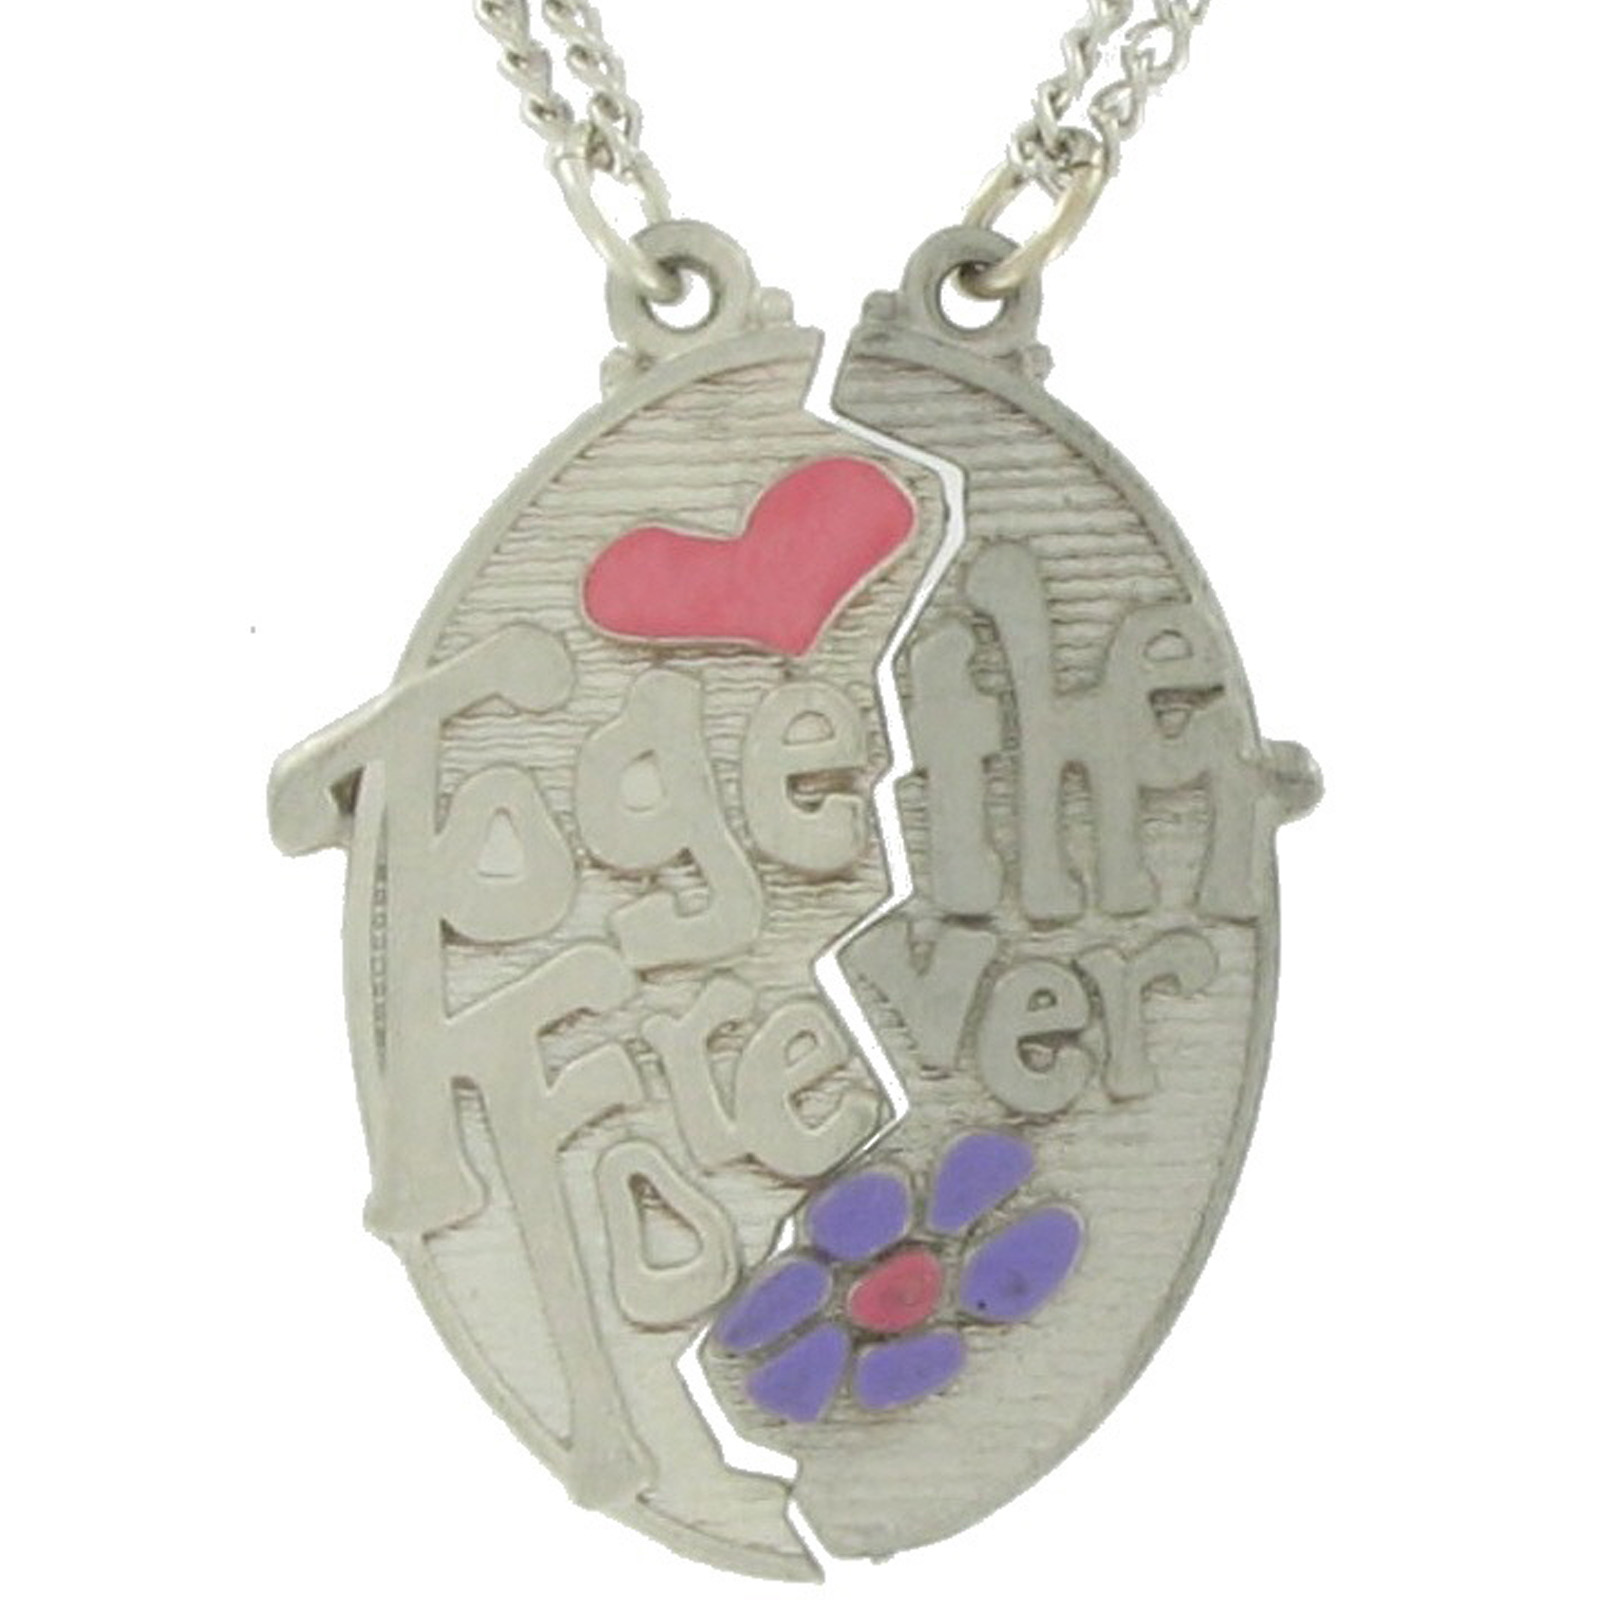 Bestfriends Necklace 3133 4 F Jewelry Gifts And Gift